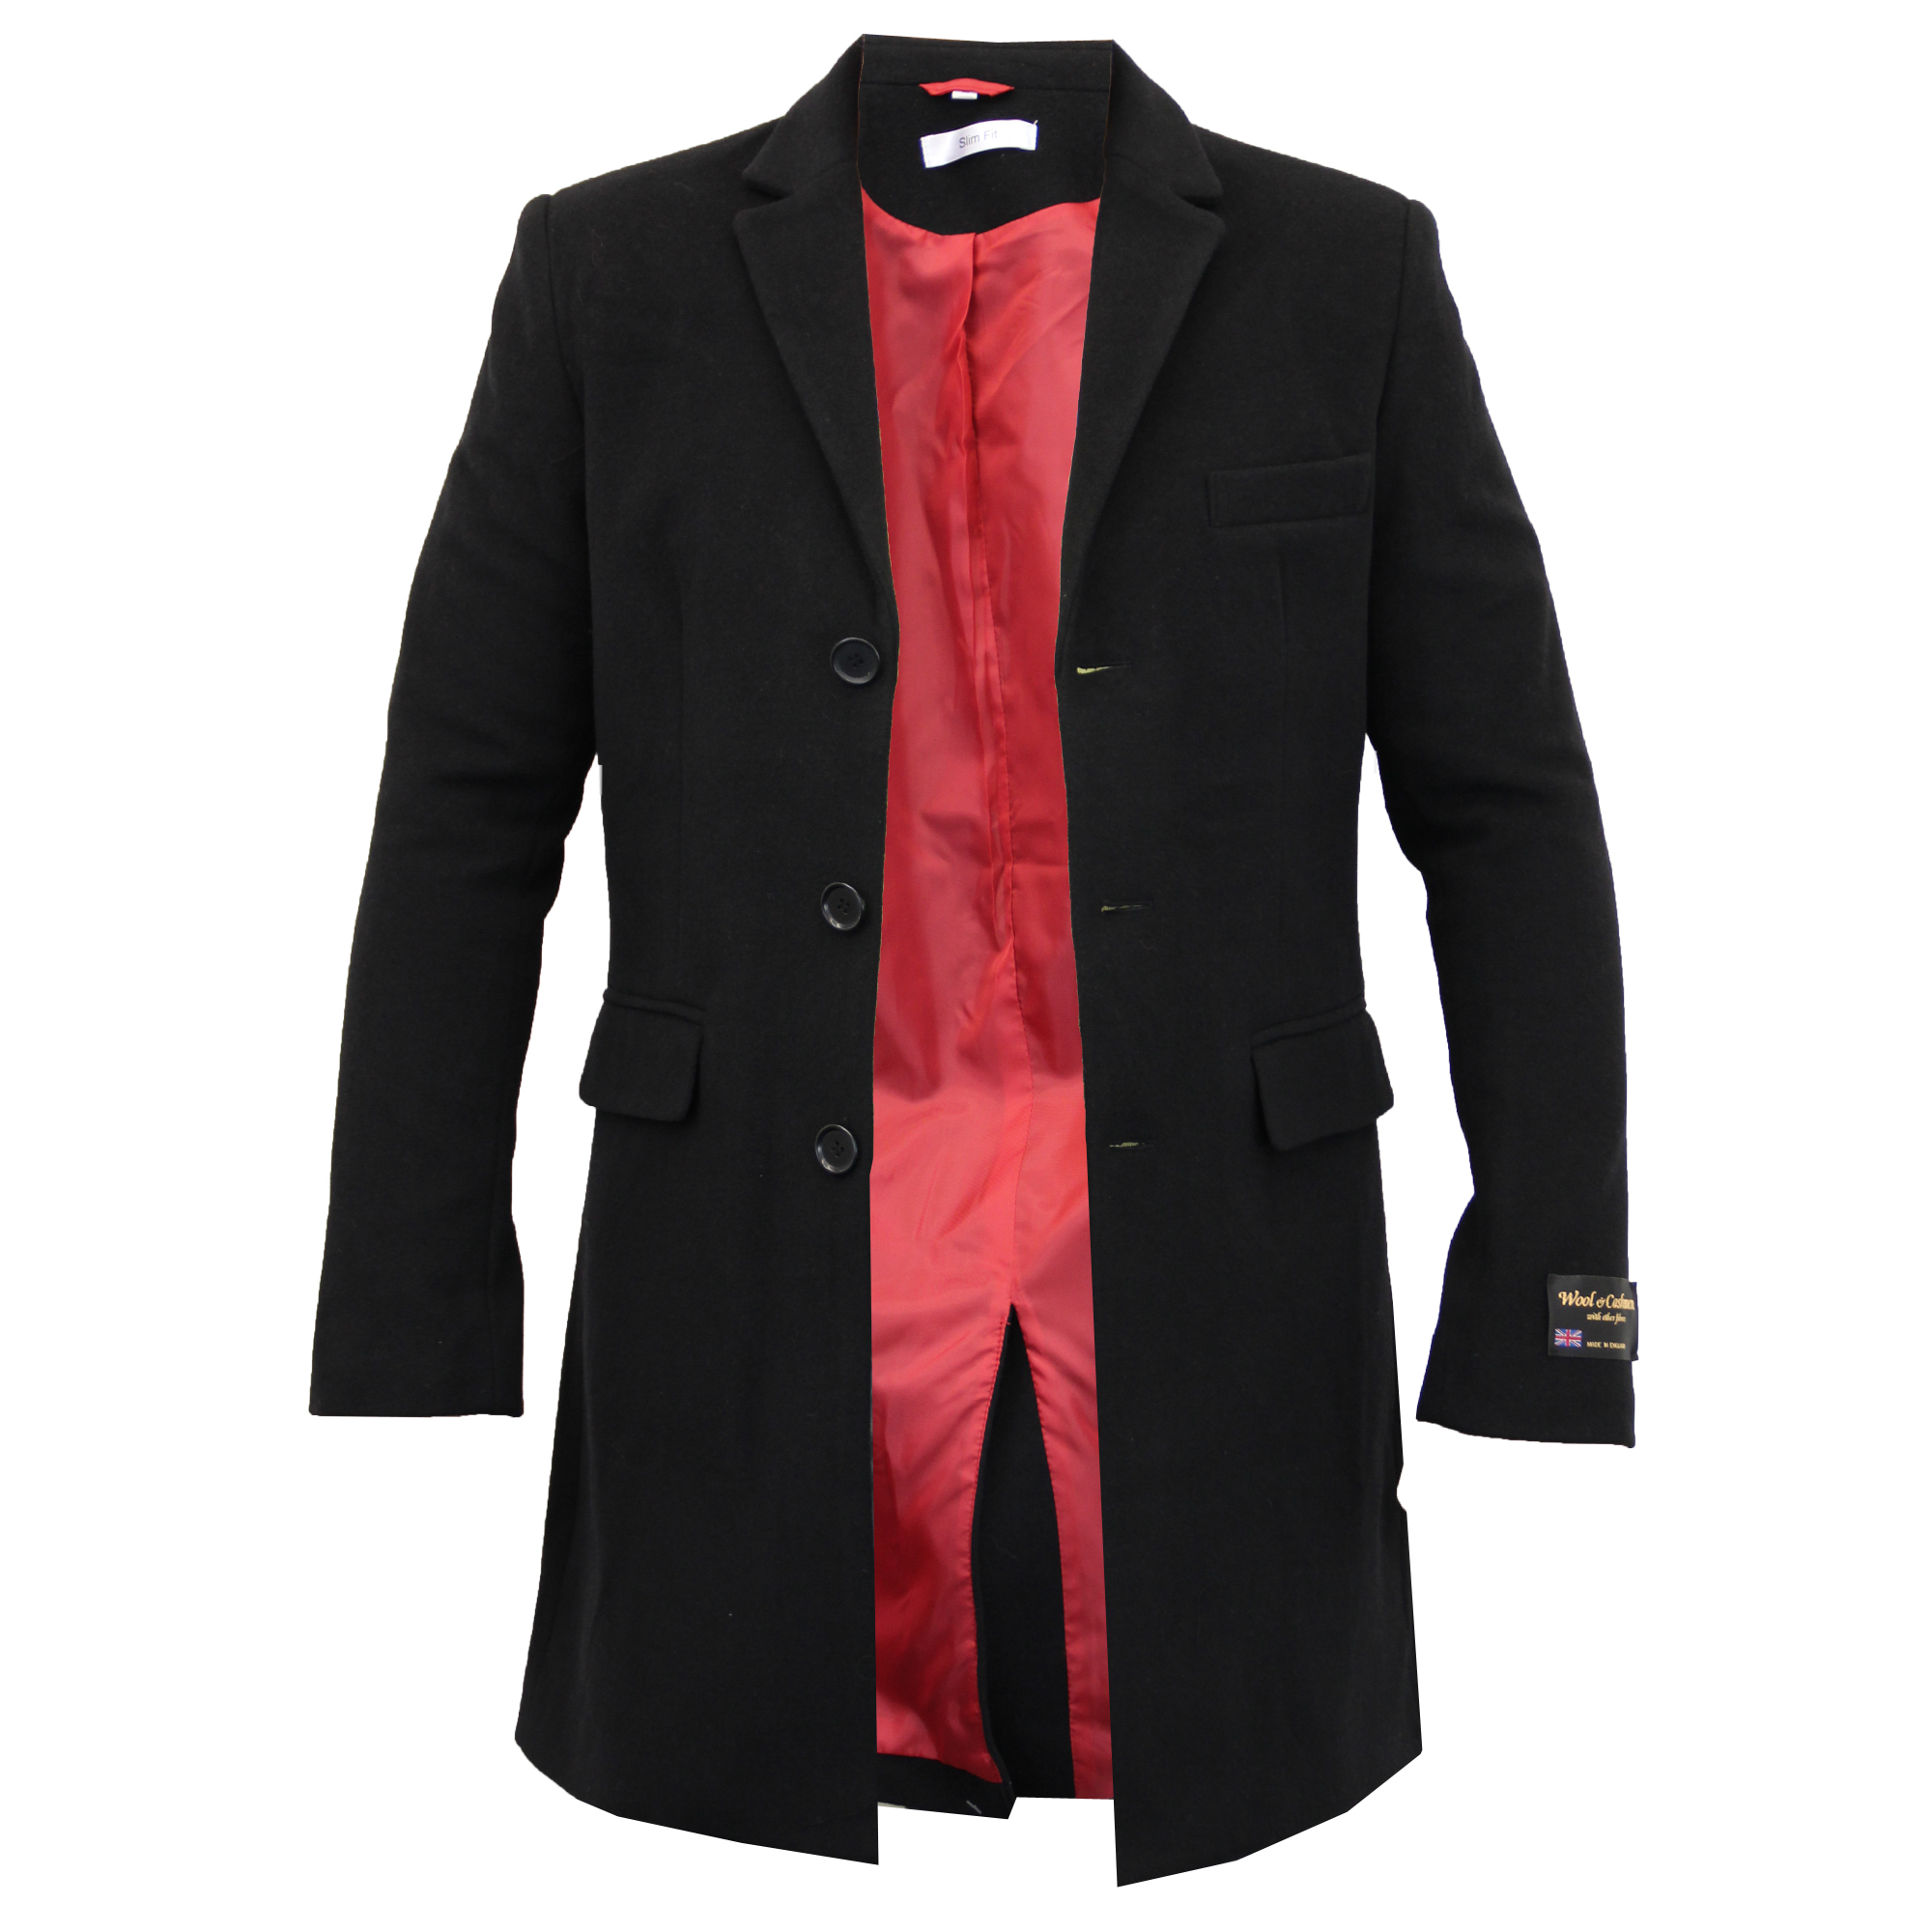 Find great deals on eBay for slim fit jackets. Shop with confidence.